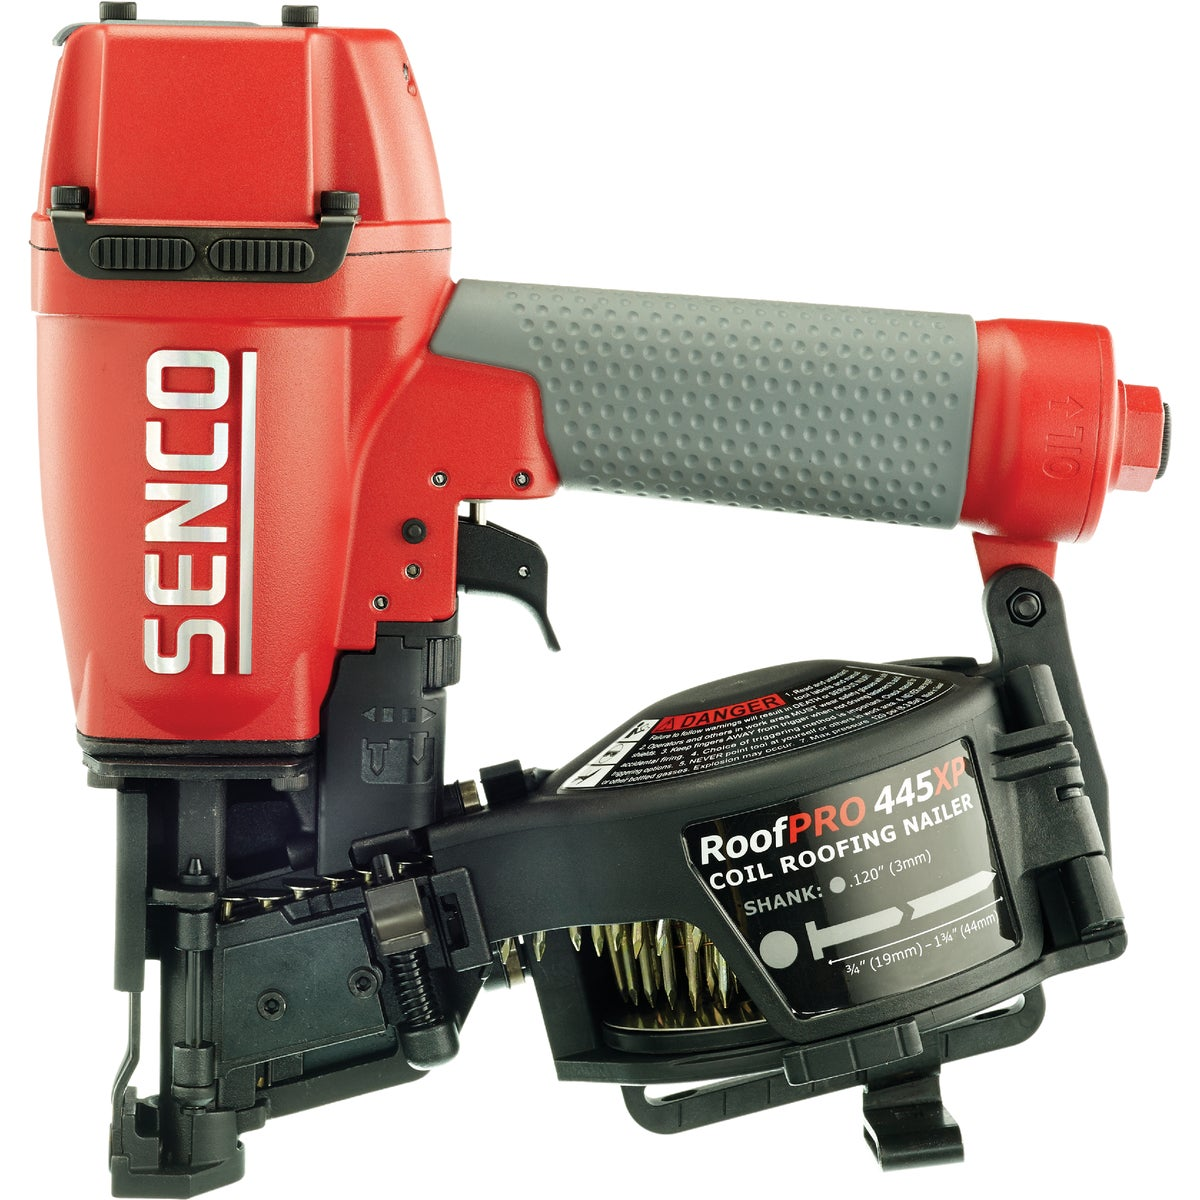 455XP COIL ROOF NAILER